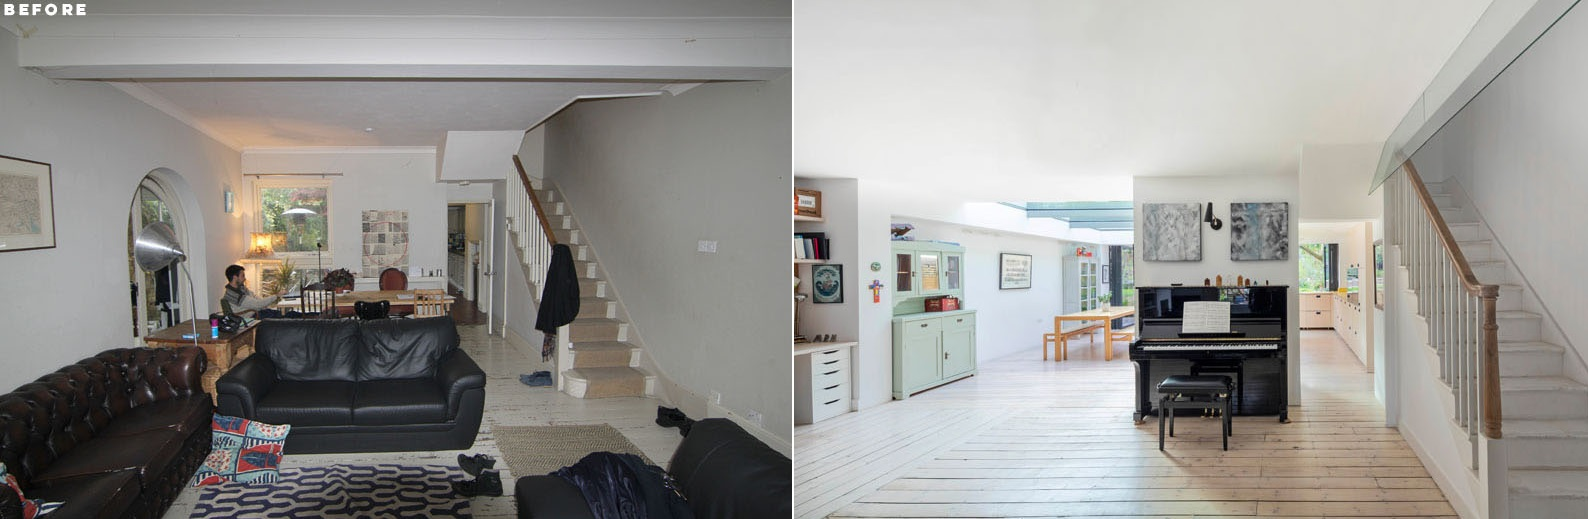 1562163598 622 london house extension with skylights and huge windows - London House Extension With Skylights And Huge Windows